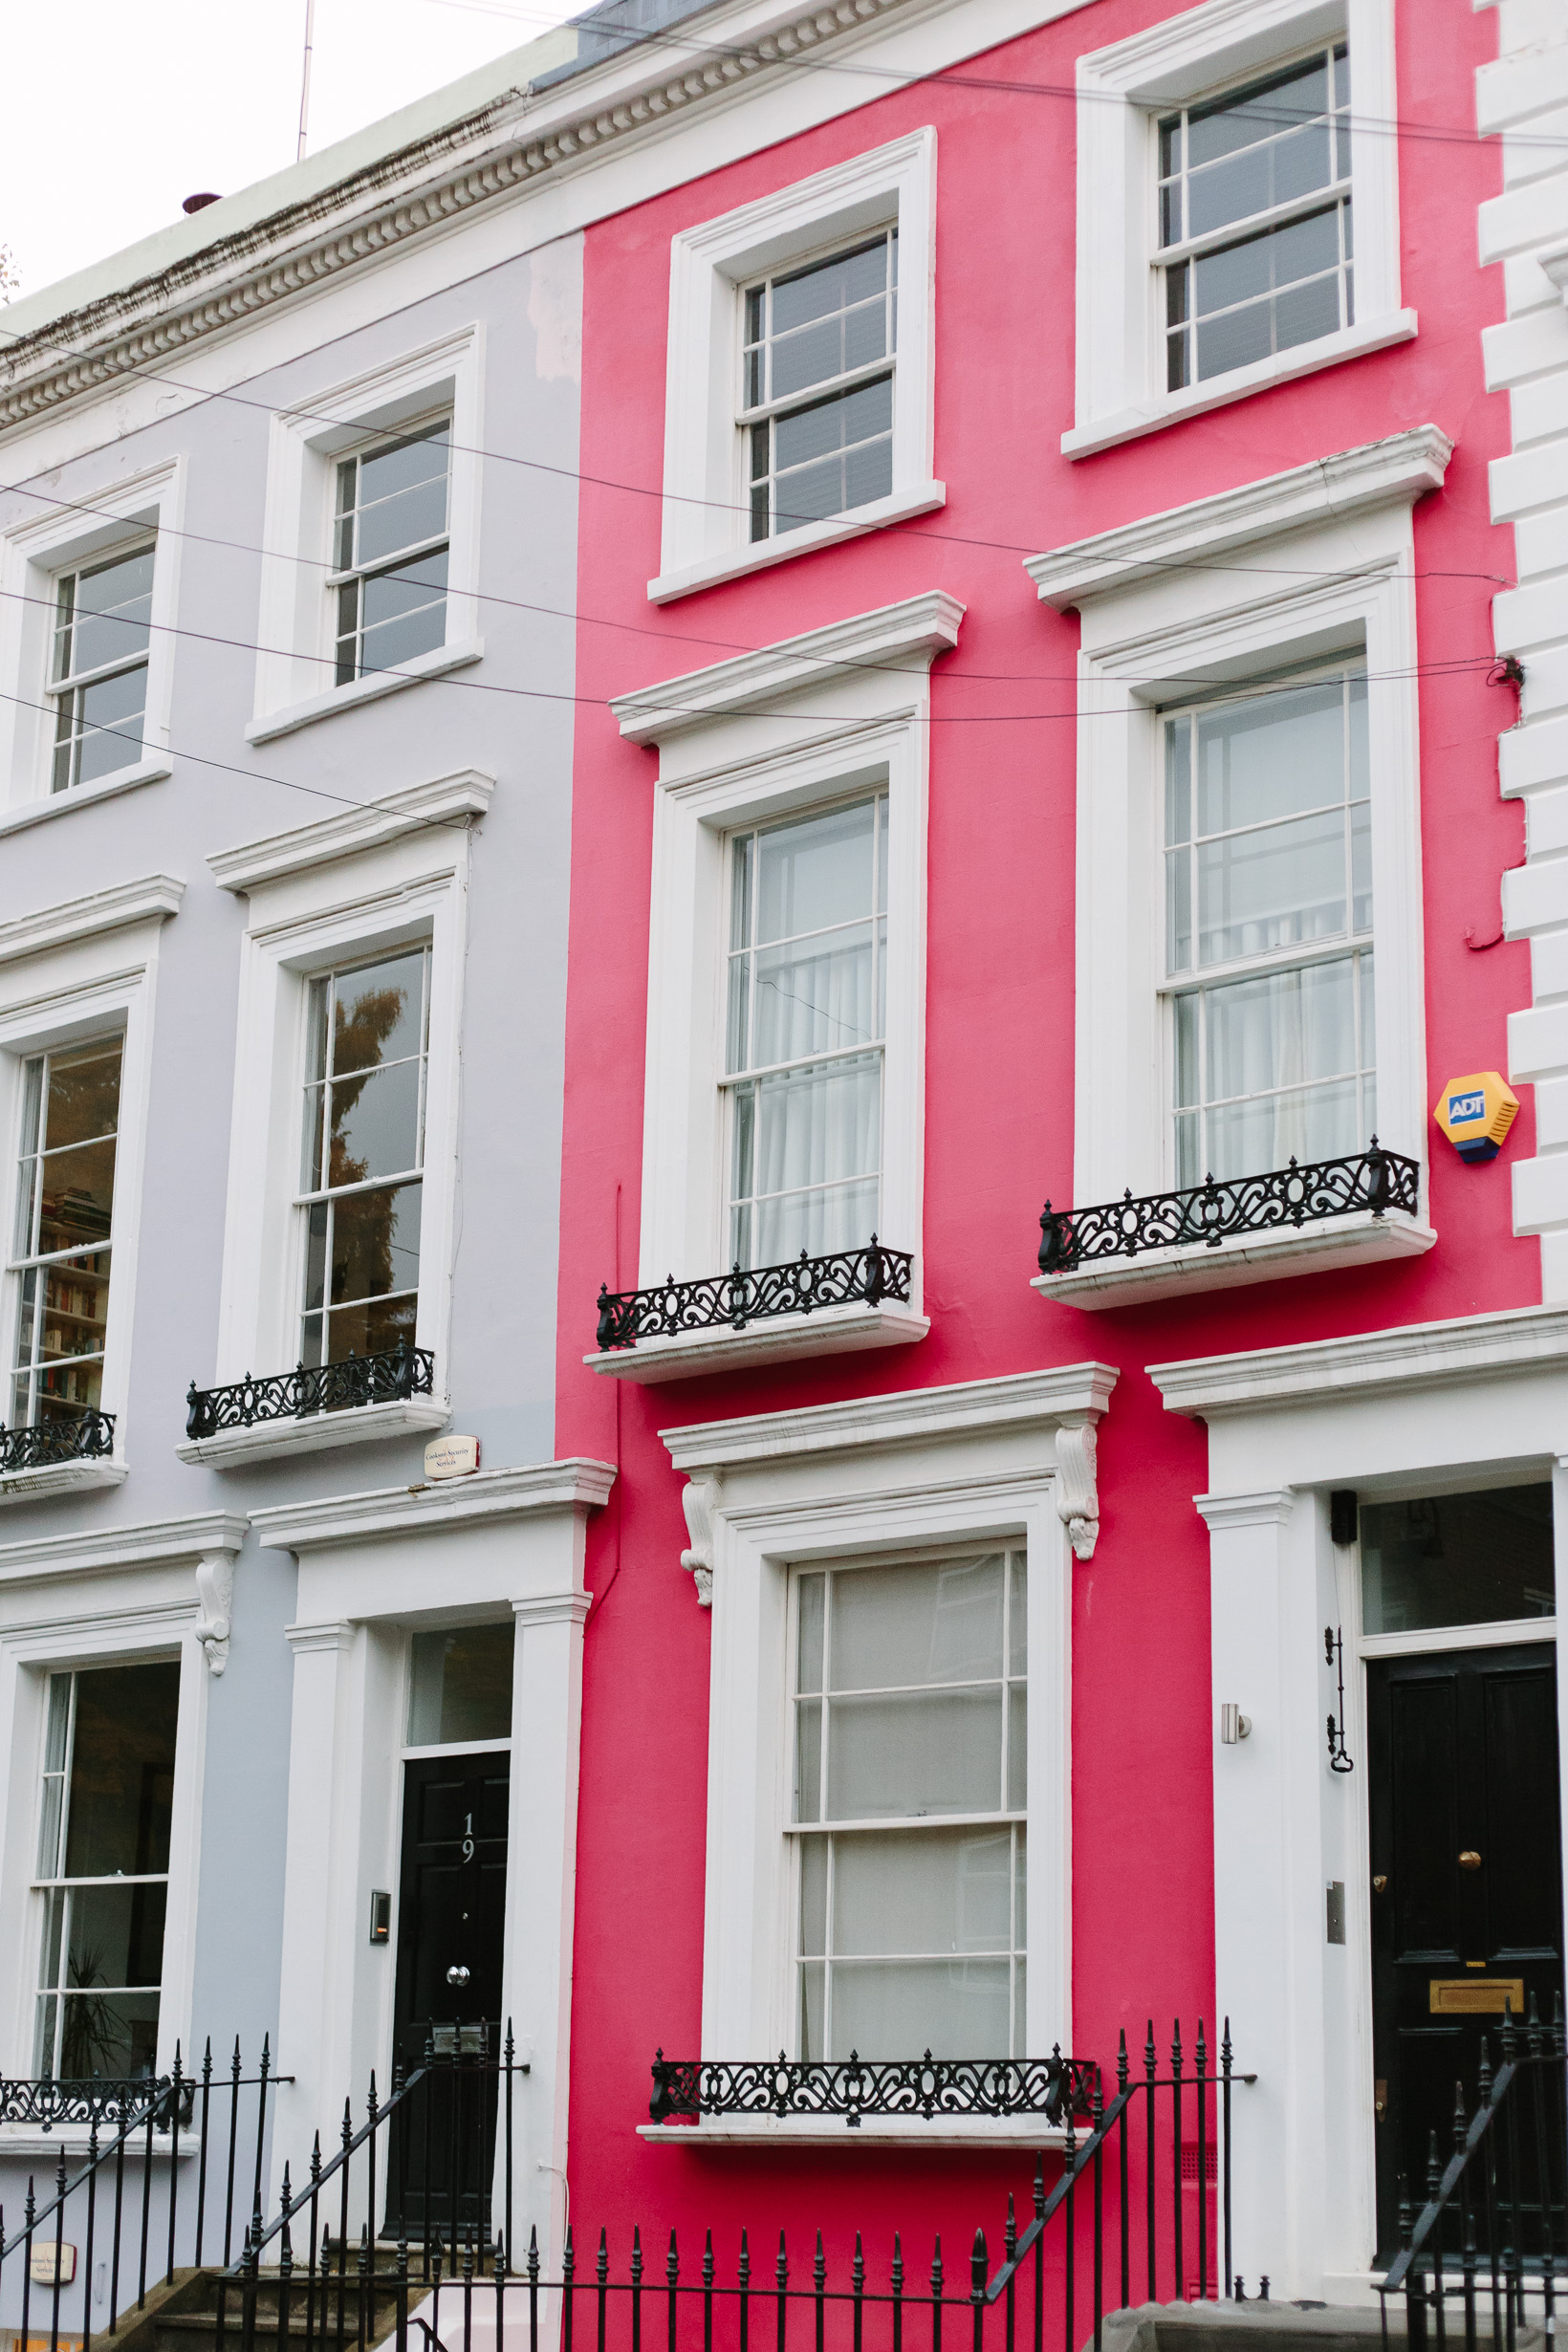 colorful-houses-in-notting-hill-4782